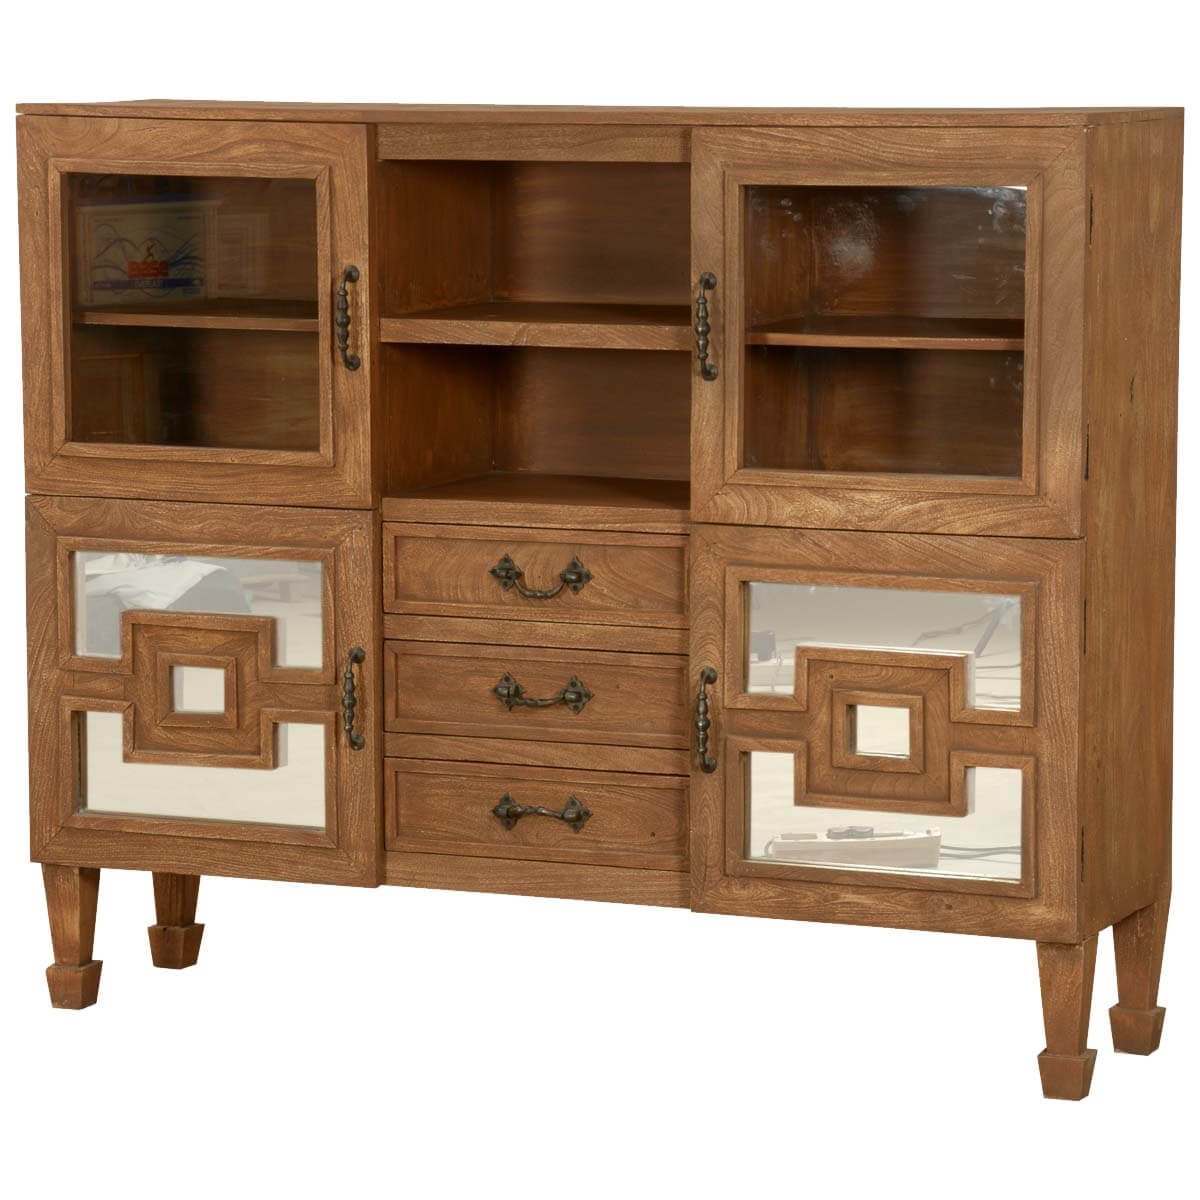 Square in a square acacia wood 63 standing display cabinet for Acacia wood kitchen cabinets